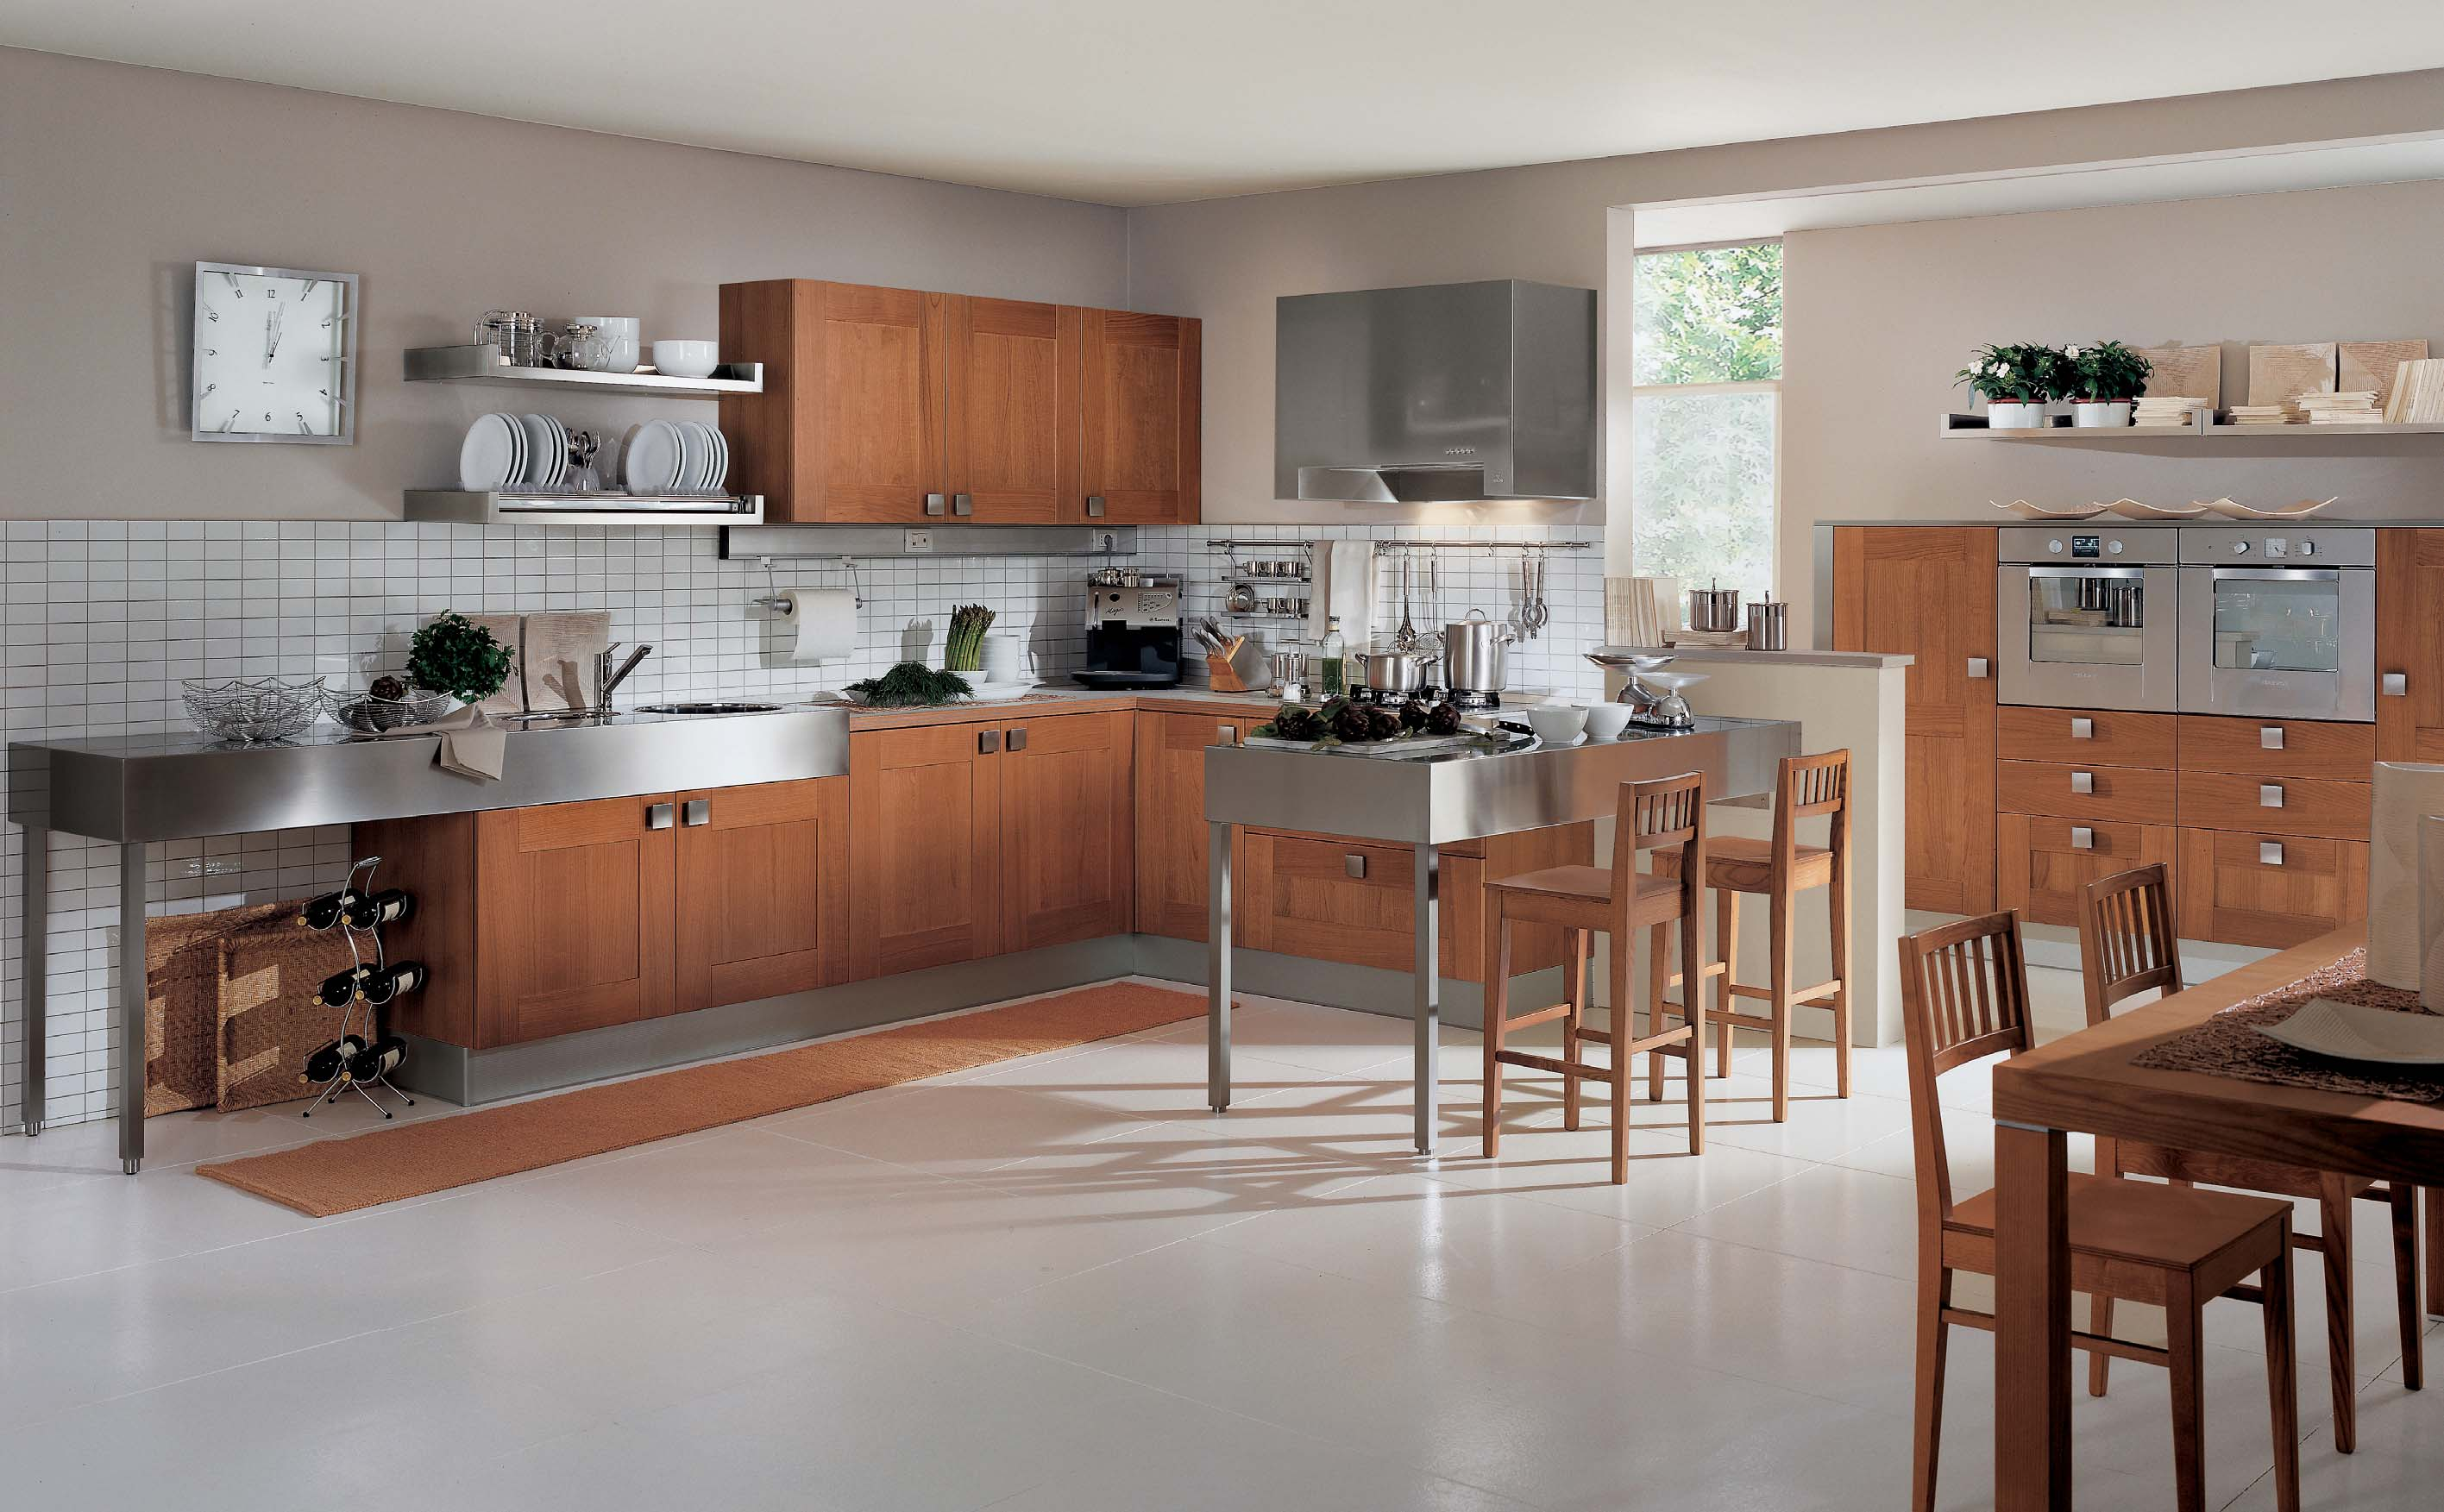 quadra riquadra artica kitchen design - Artica Designs